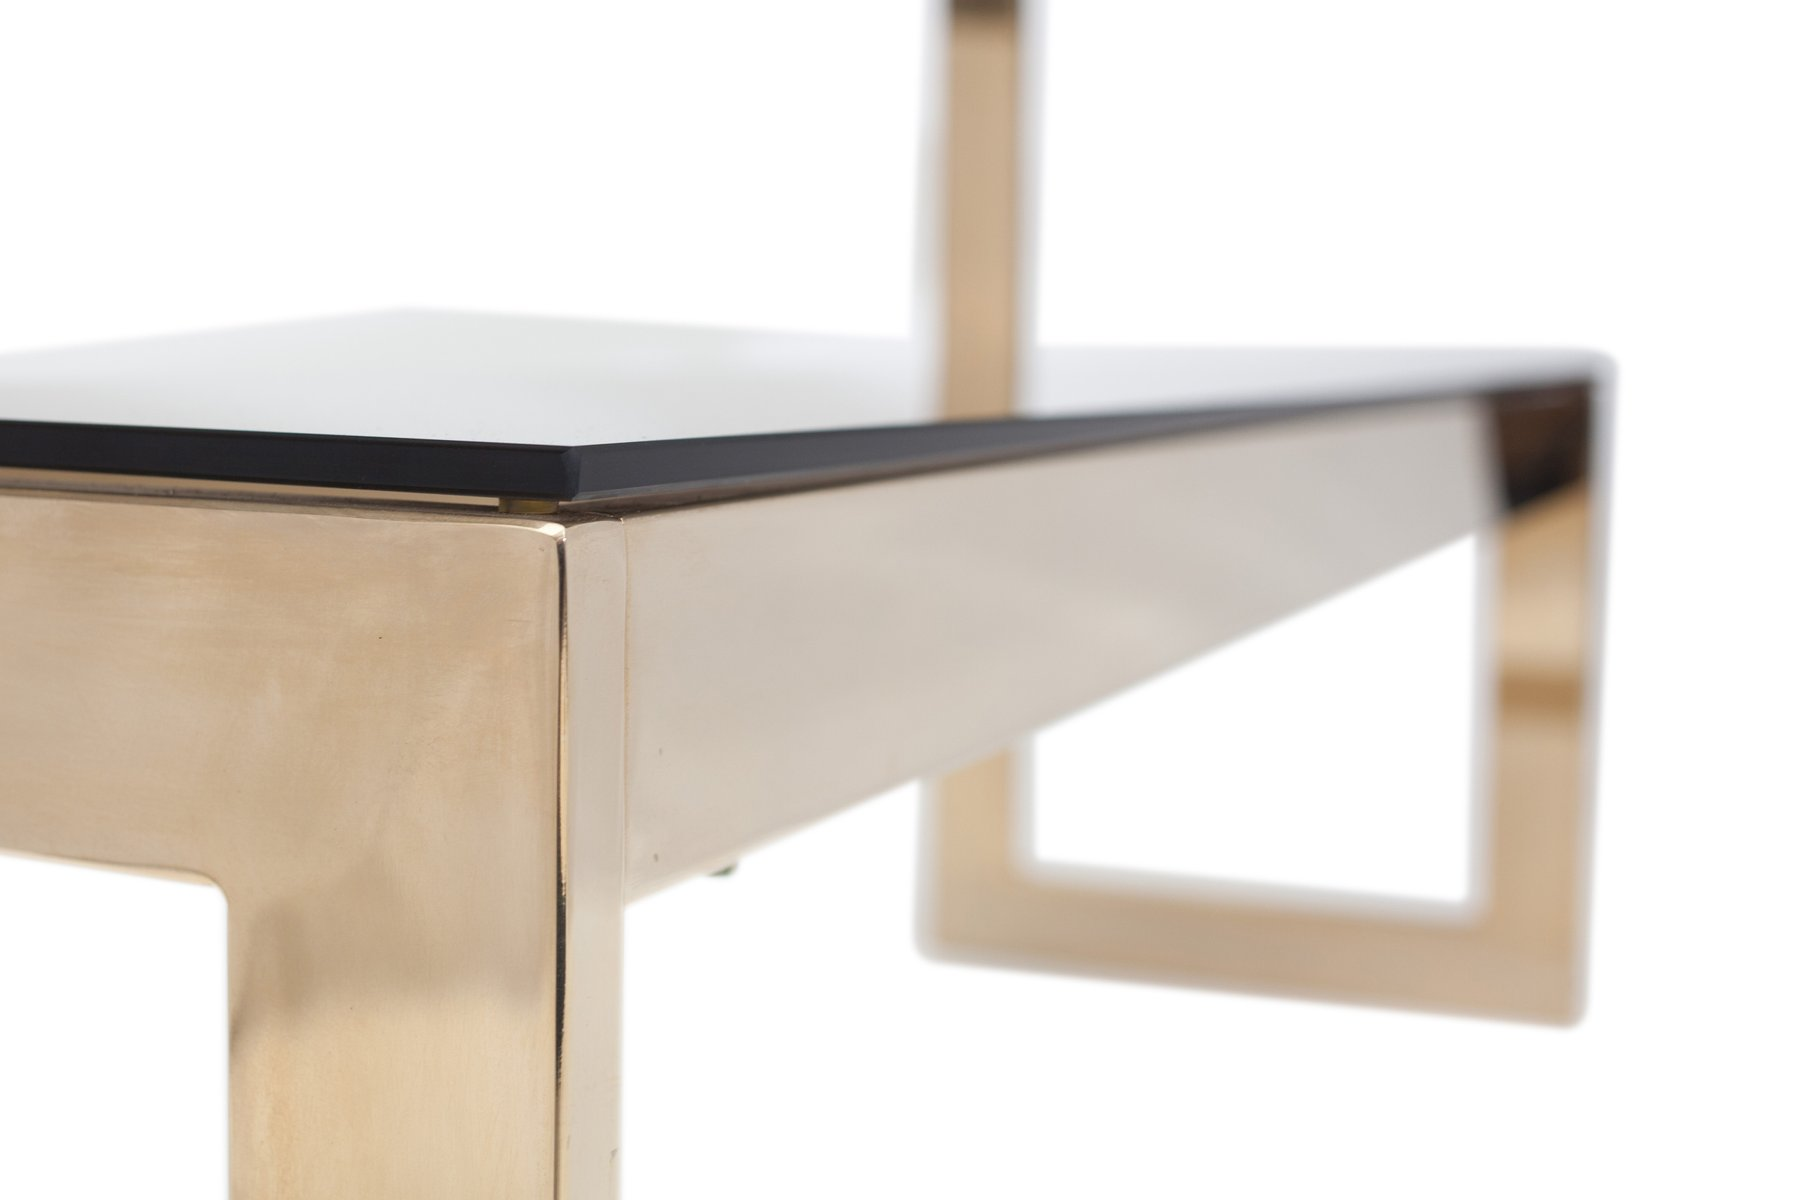 Gold Layered 2 Tiered Console Table by Belgo Chrom Dewulf